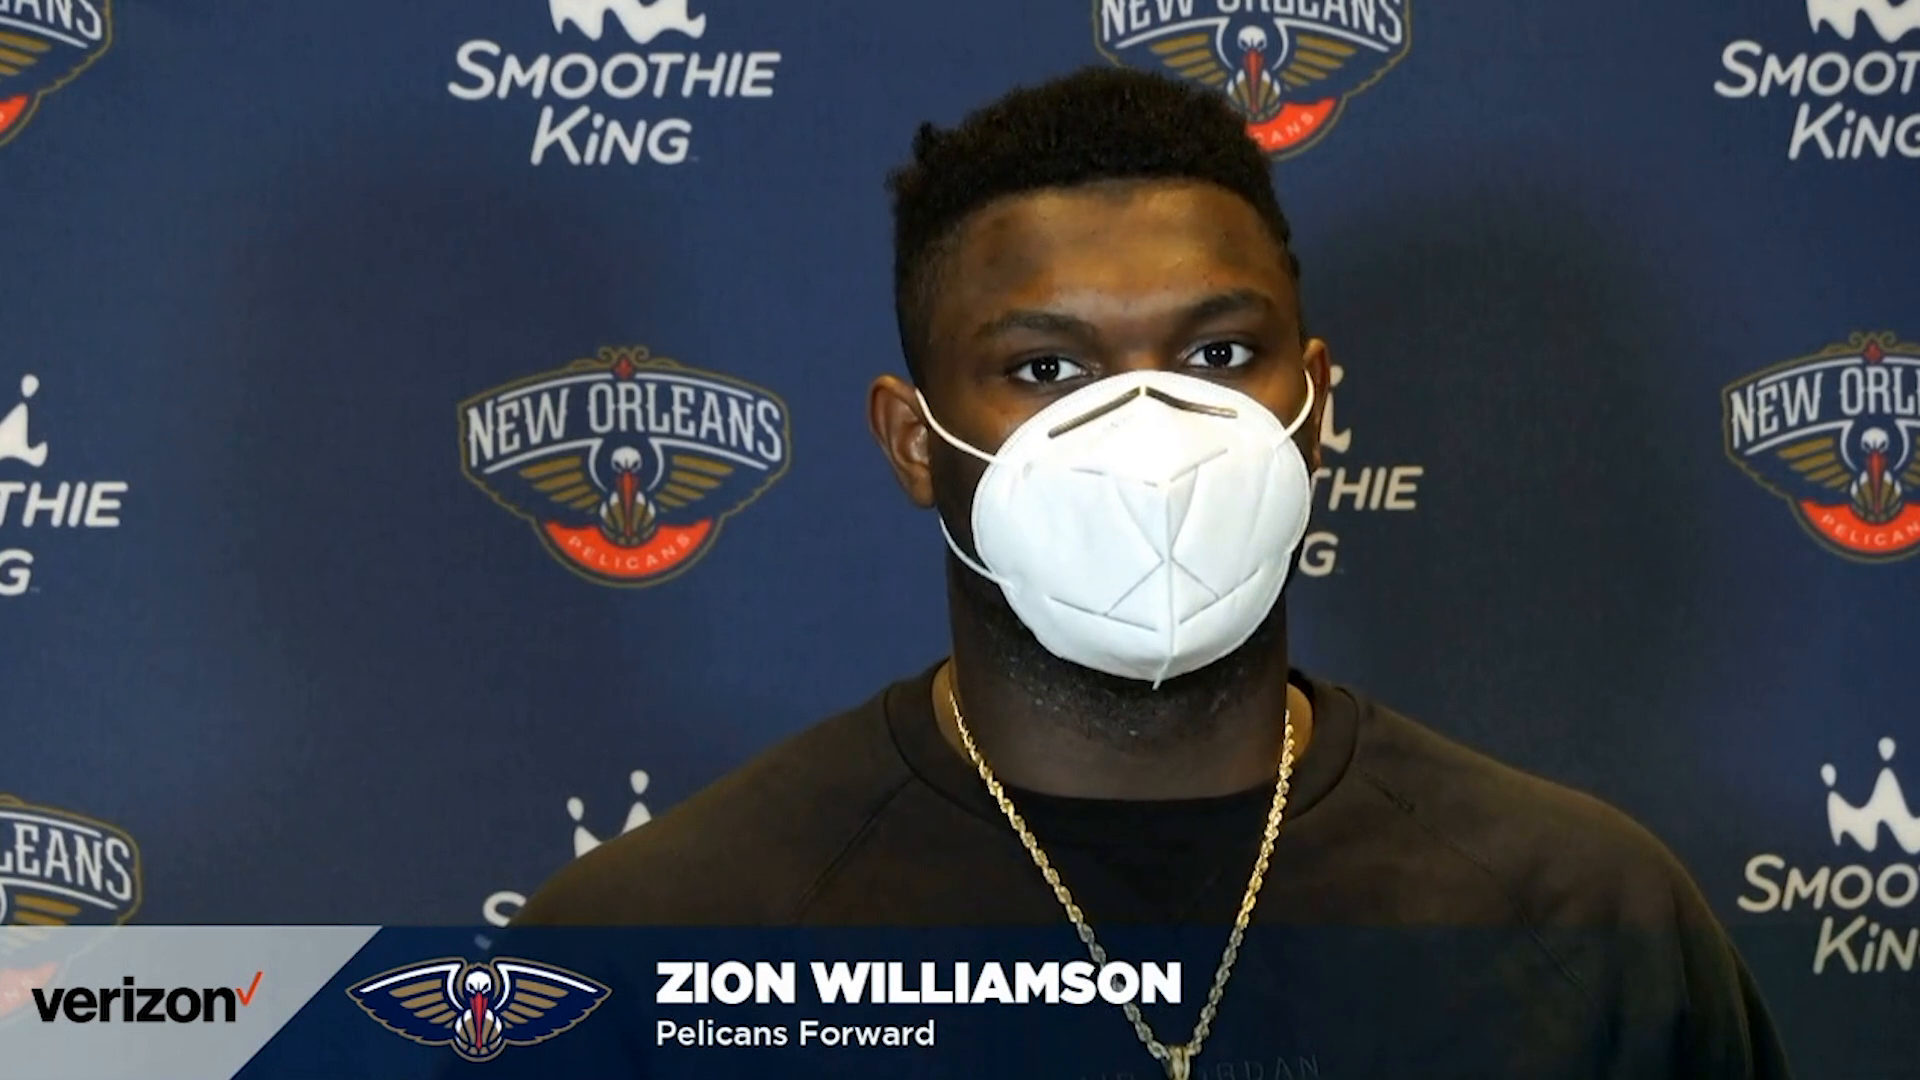 Pelicans-Jazz Postgame: Zion Williamson 3-1-2021